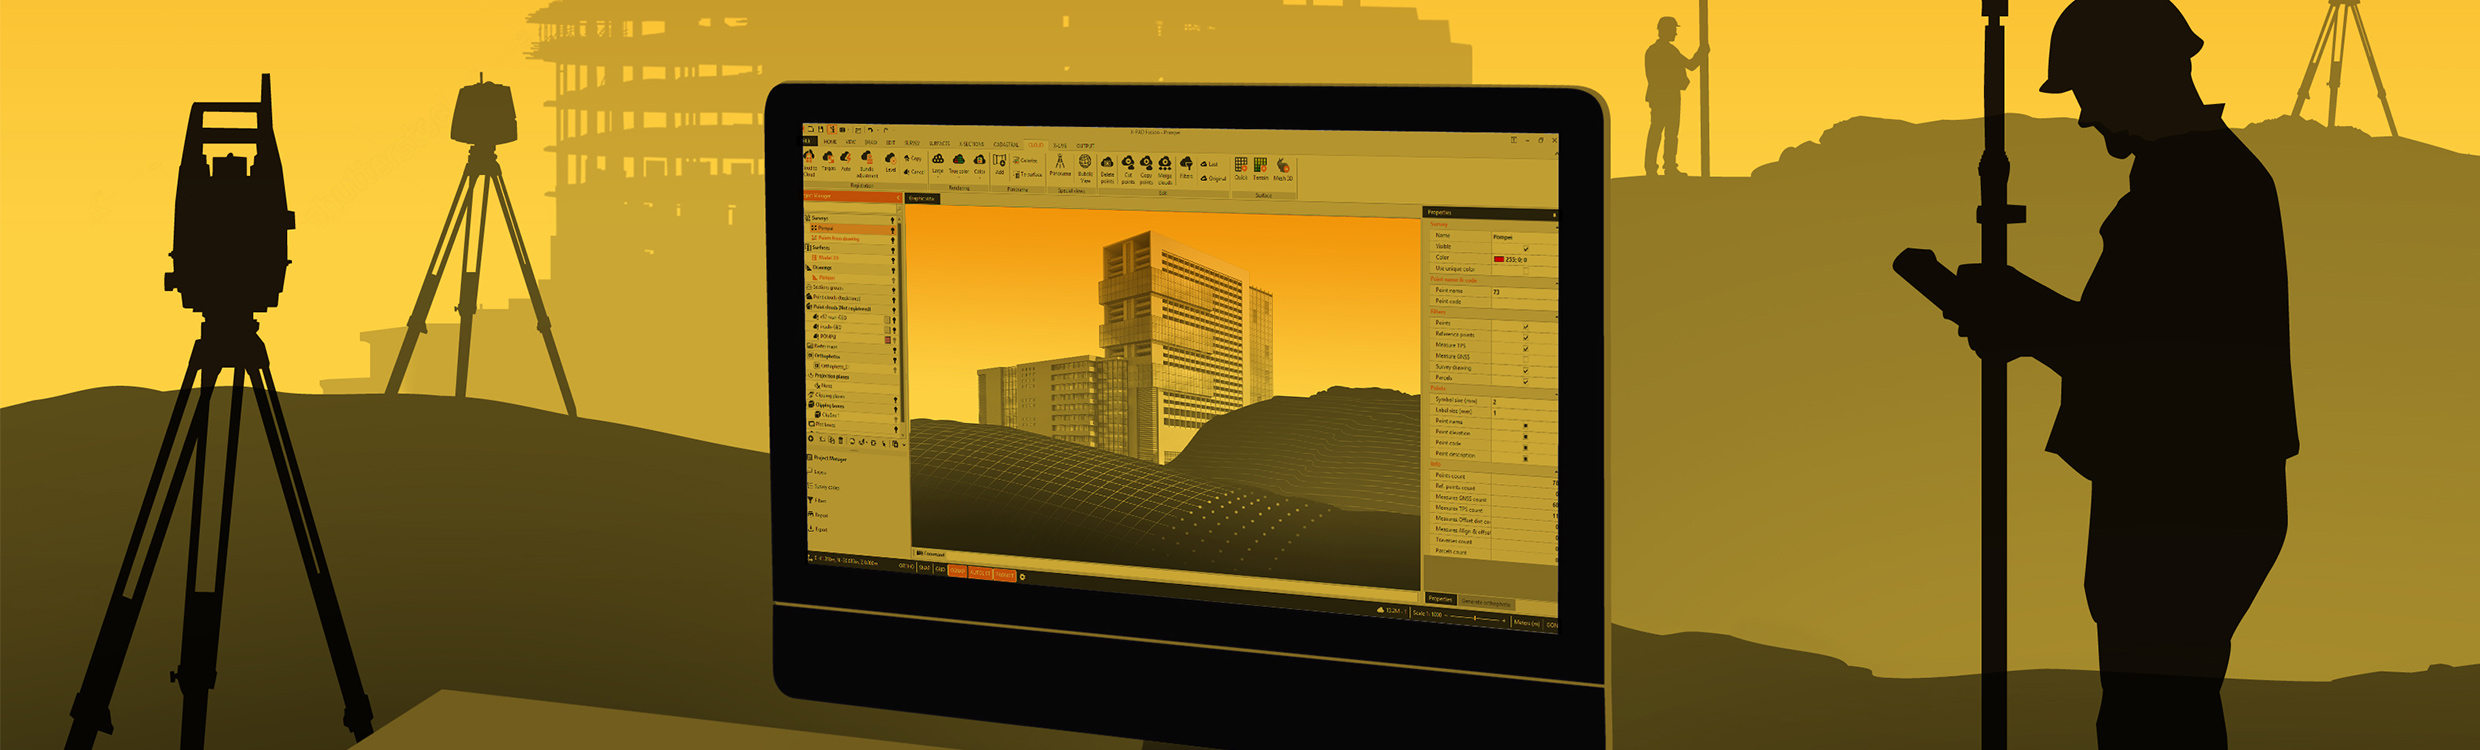 GeoMax Software X-PAD Office Fusion 2480x750